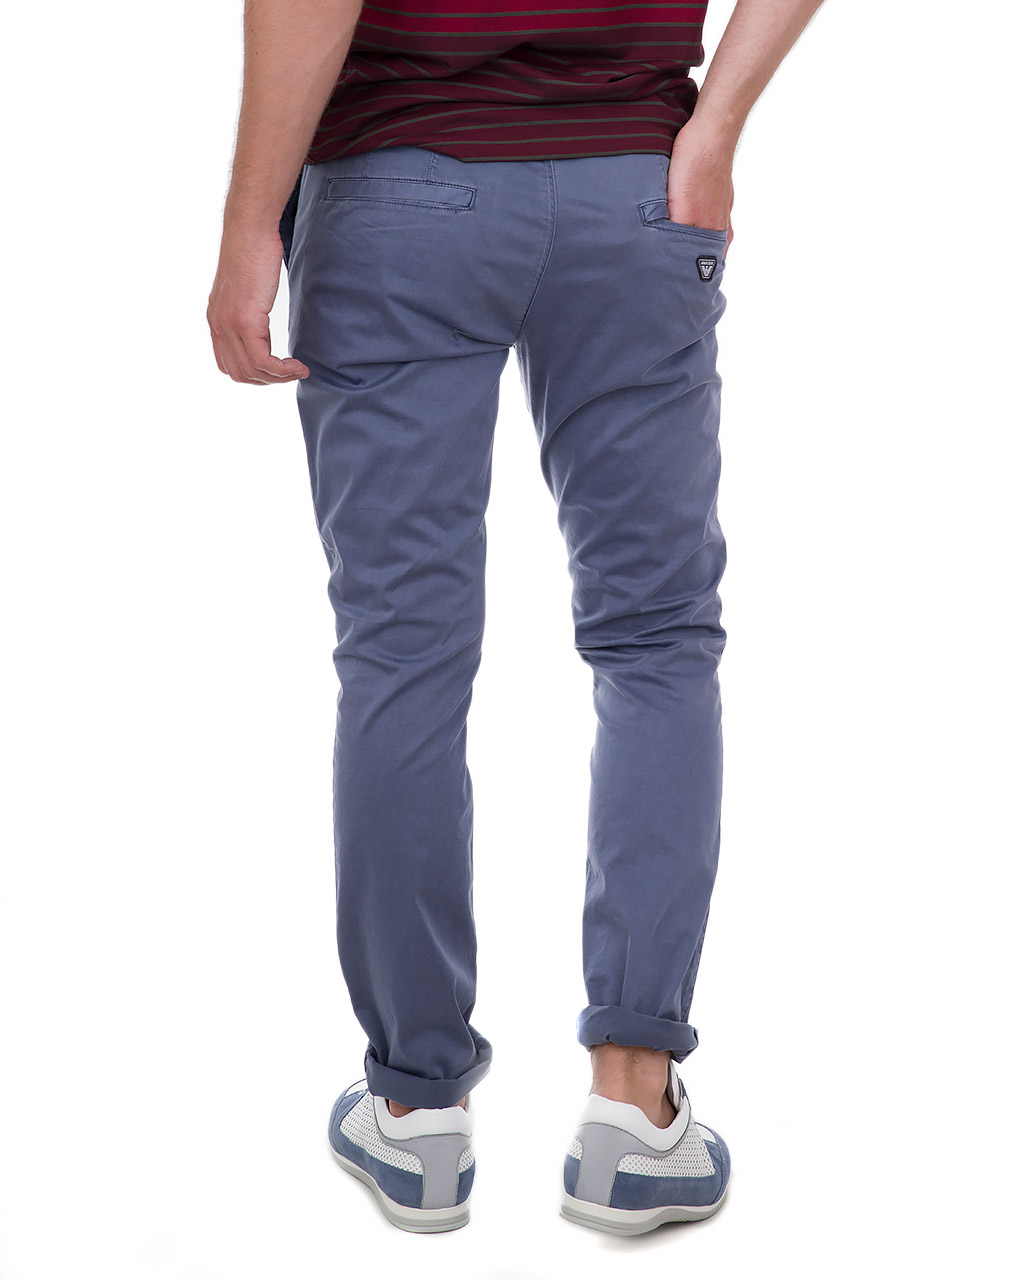 Men's trousers 8351-430-941/9 (4)